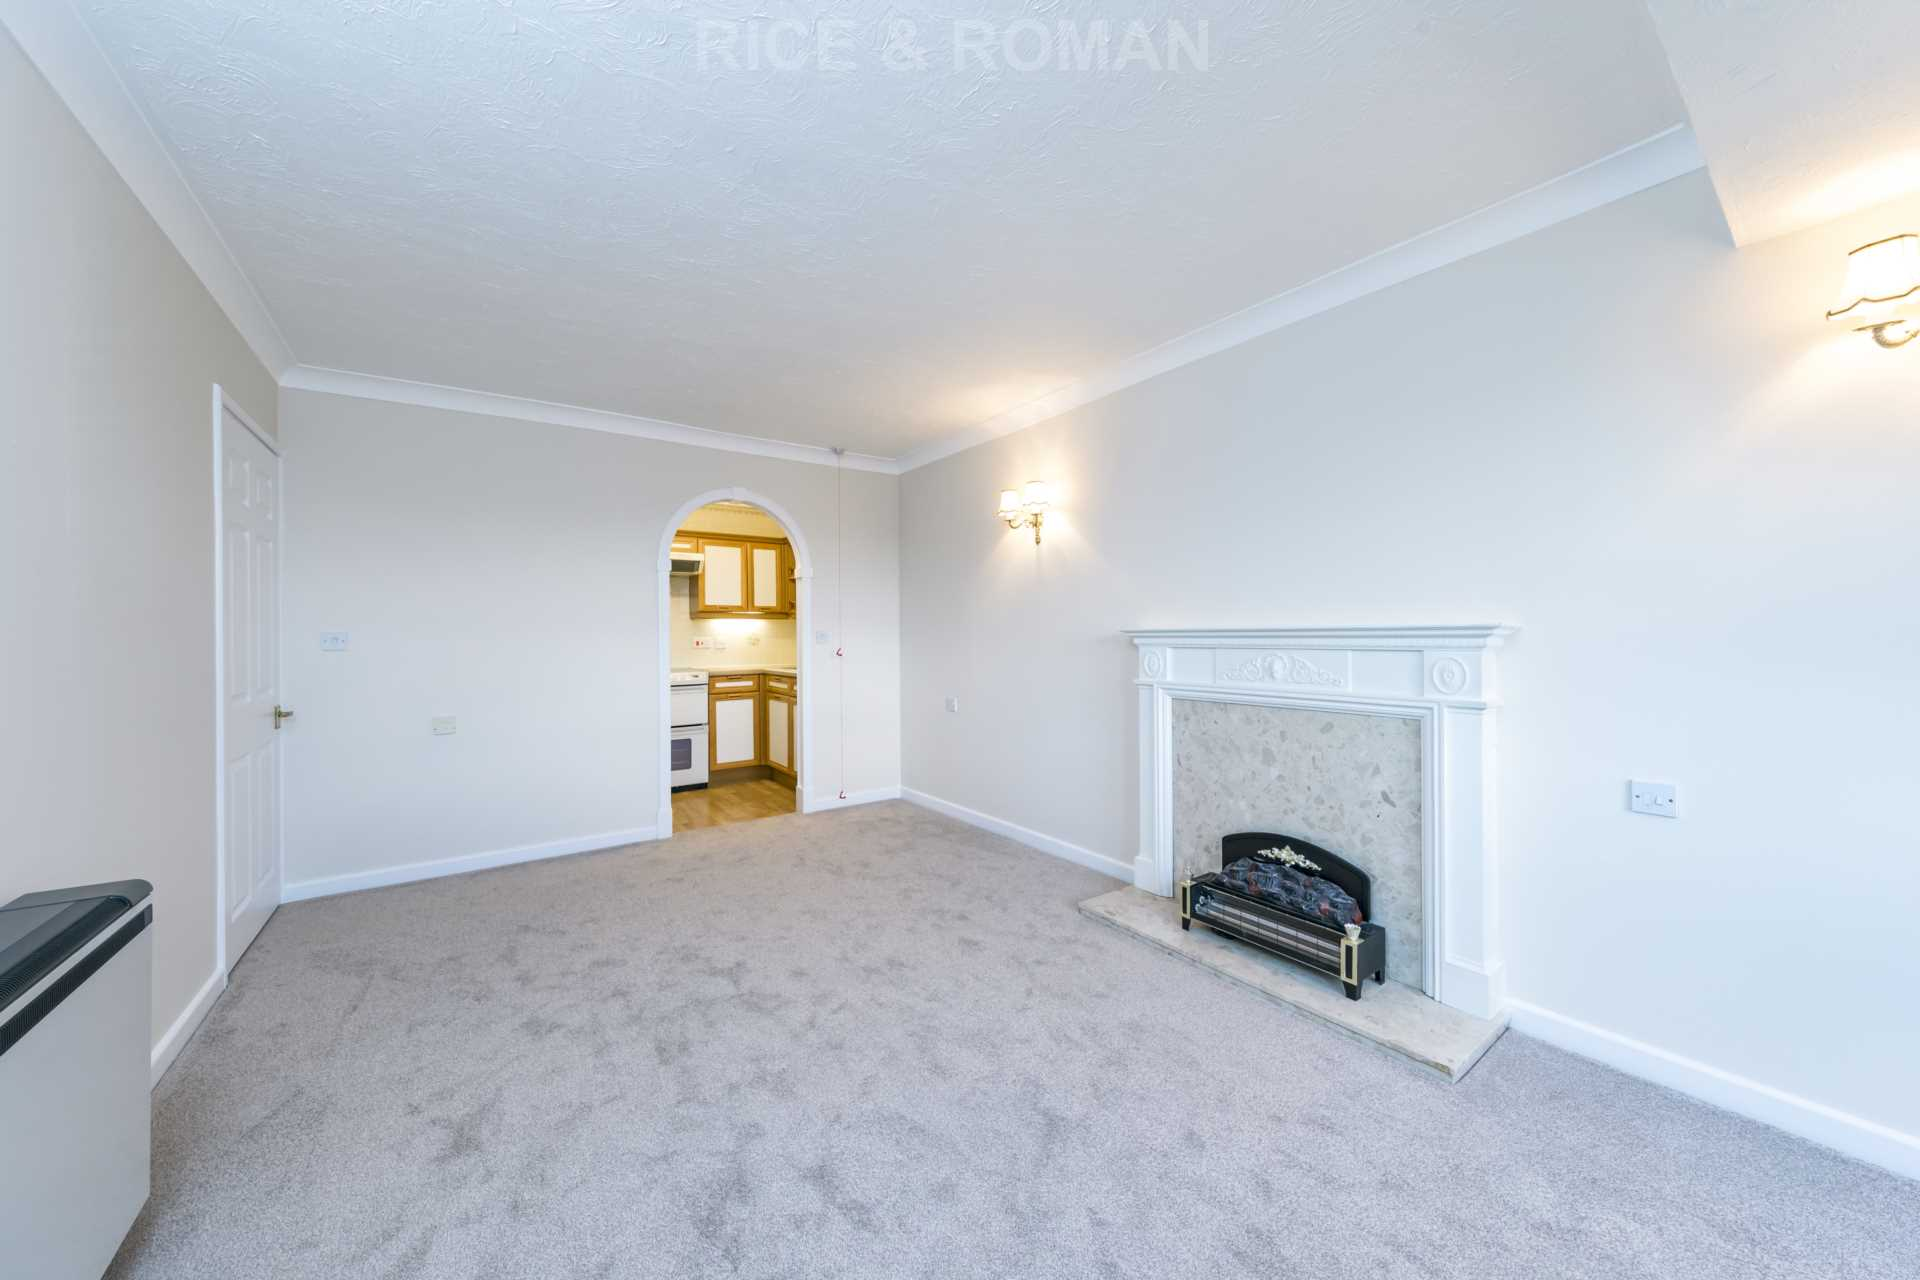 House To Rent In Wimbledon L2L4571-192